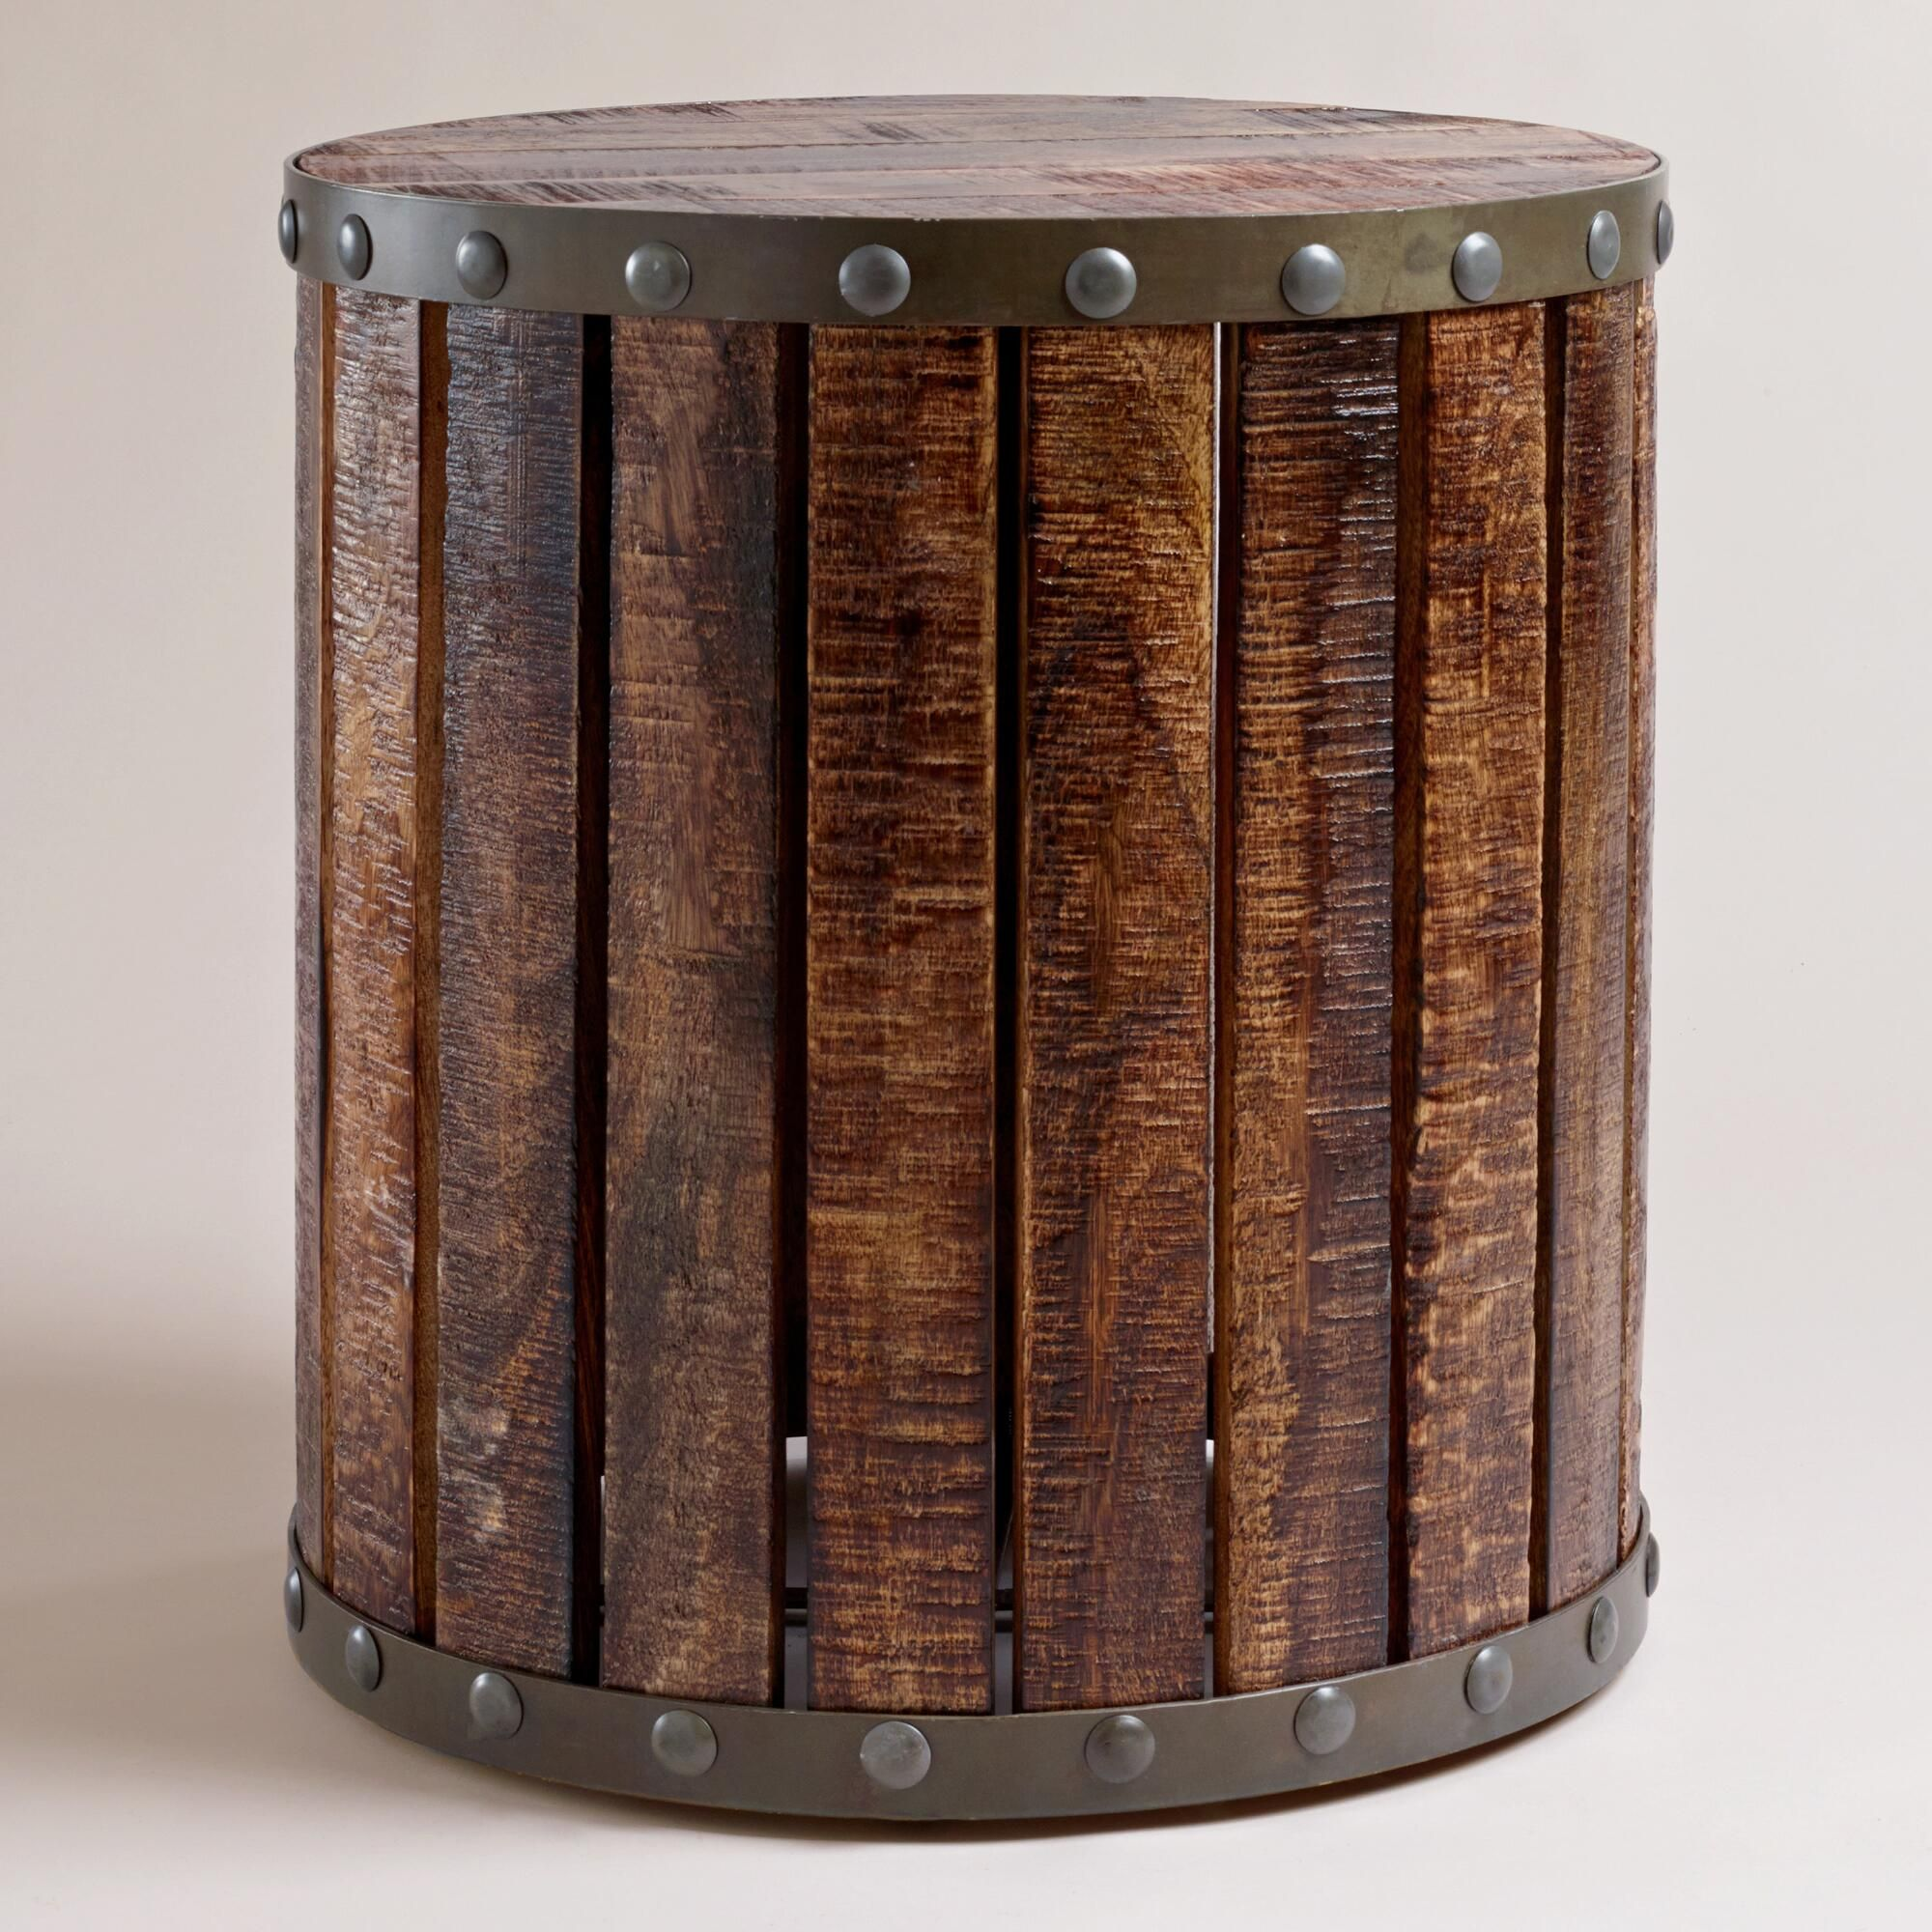 our wood plank drum table is a unique accent table with an industrial stylethat suits. our wood plank drum table is a unique accent table with an